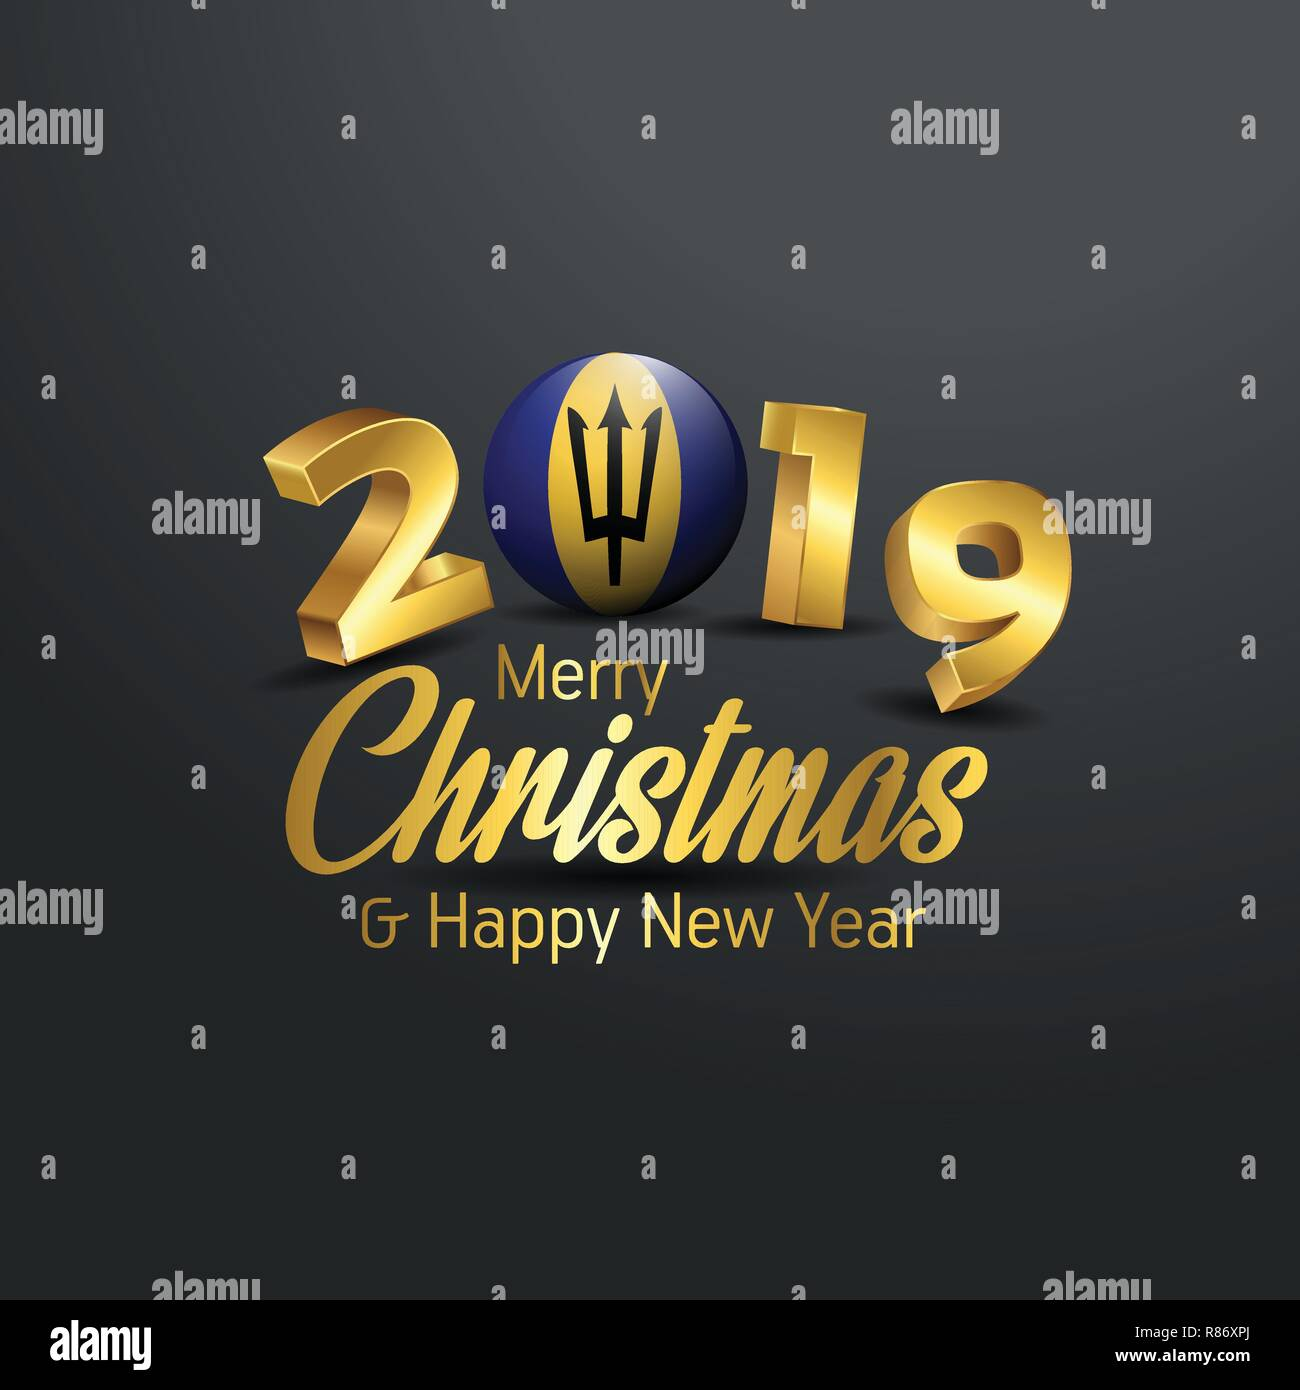 Barbados Flag 2019 Merry Christmas Typography. New Year Abstract Celebration background Stock Vector